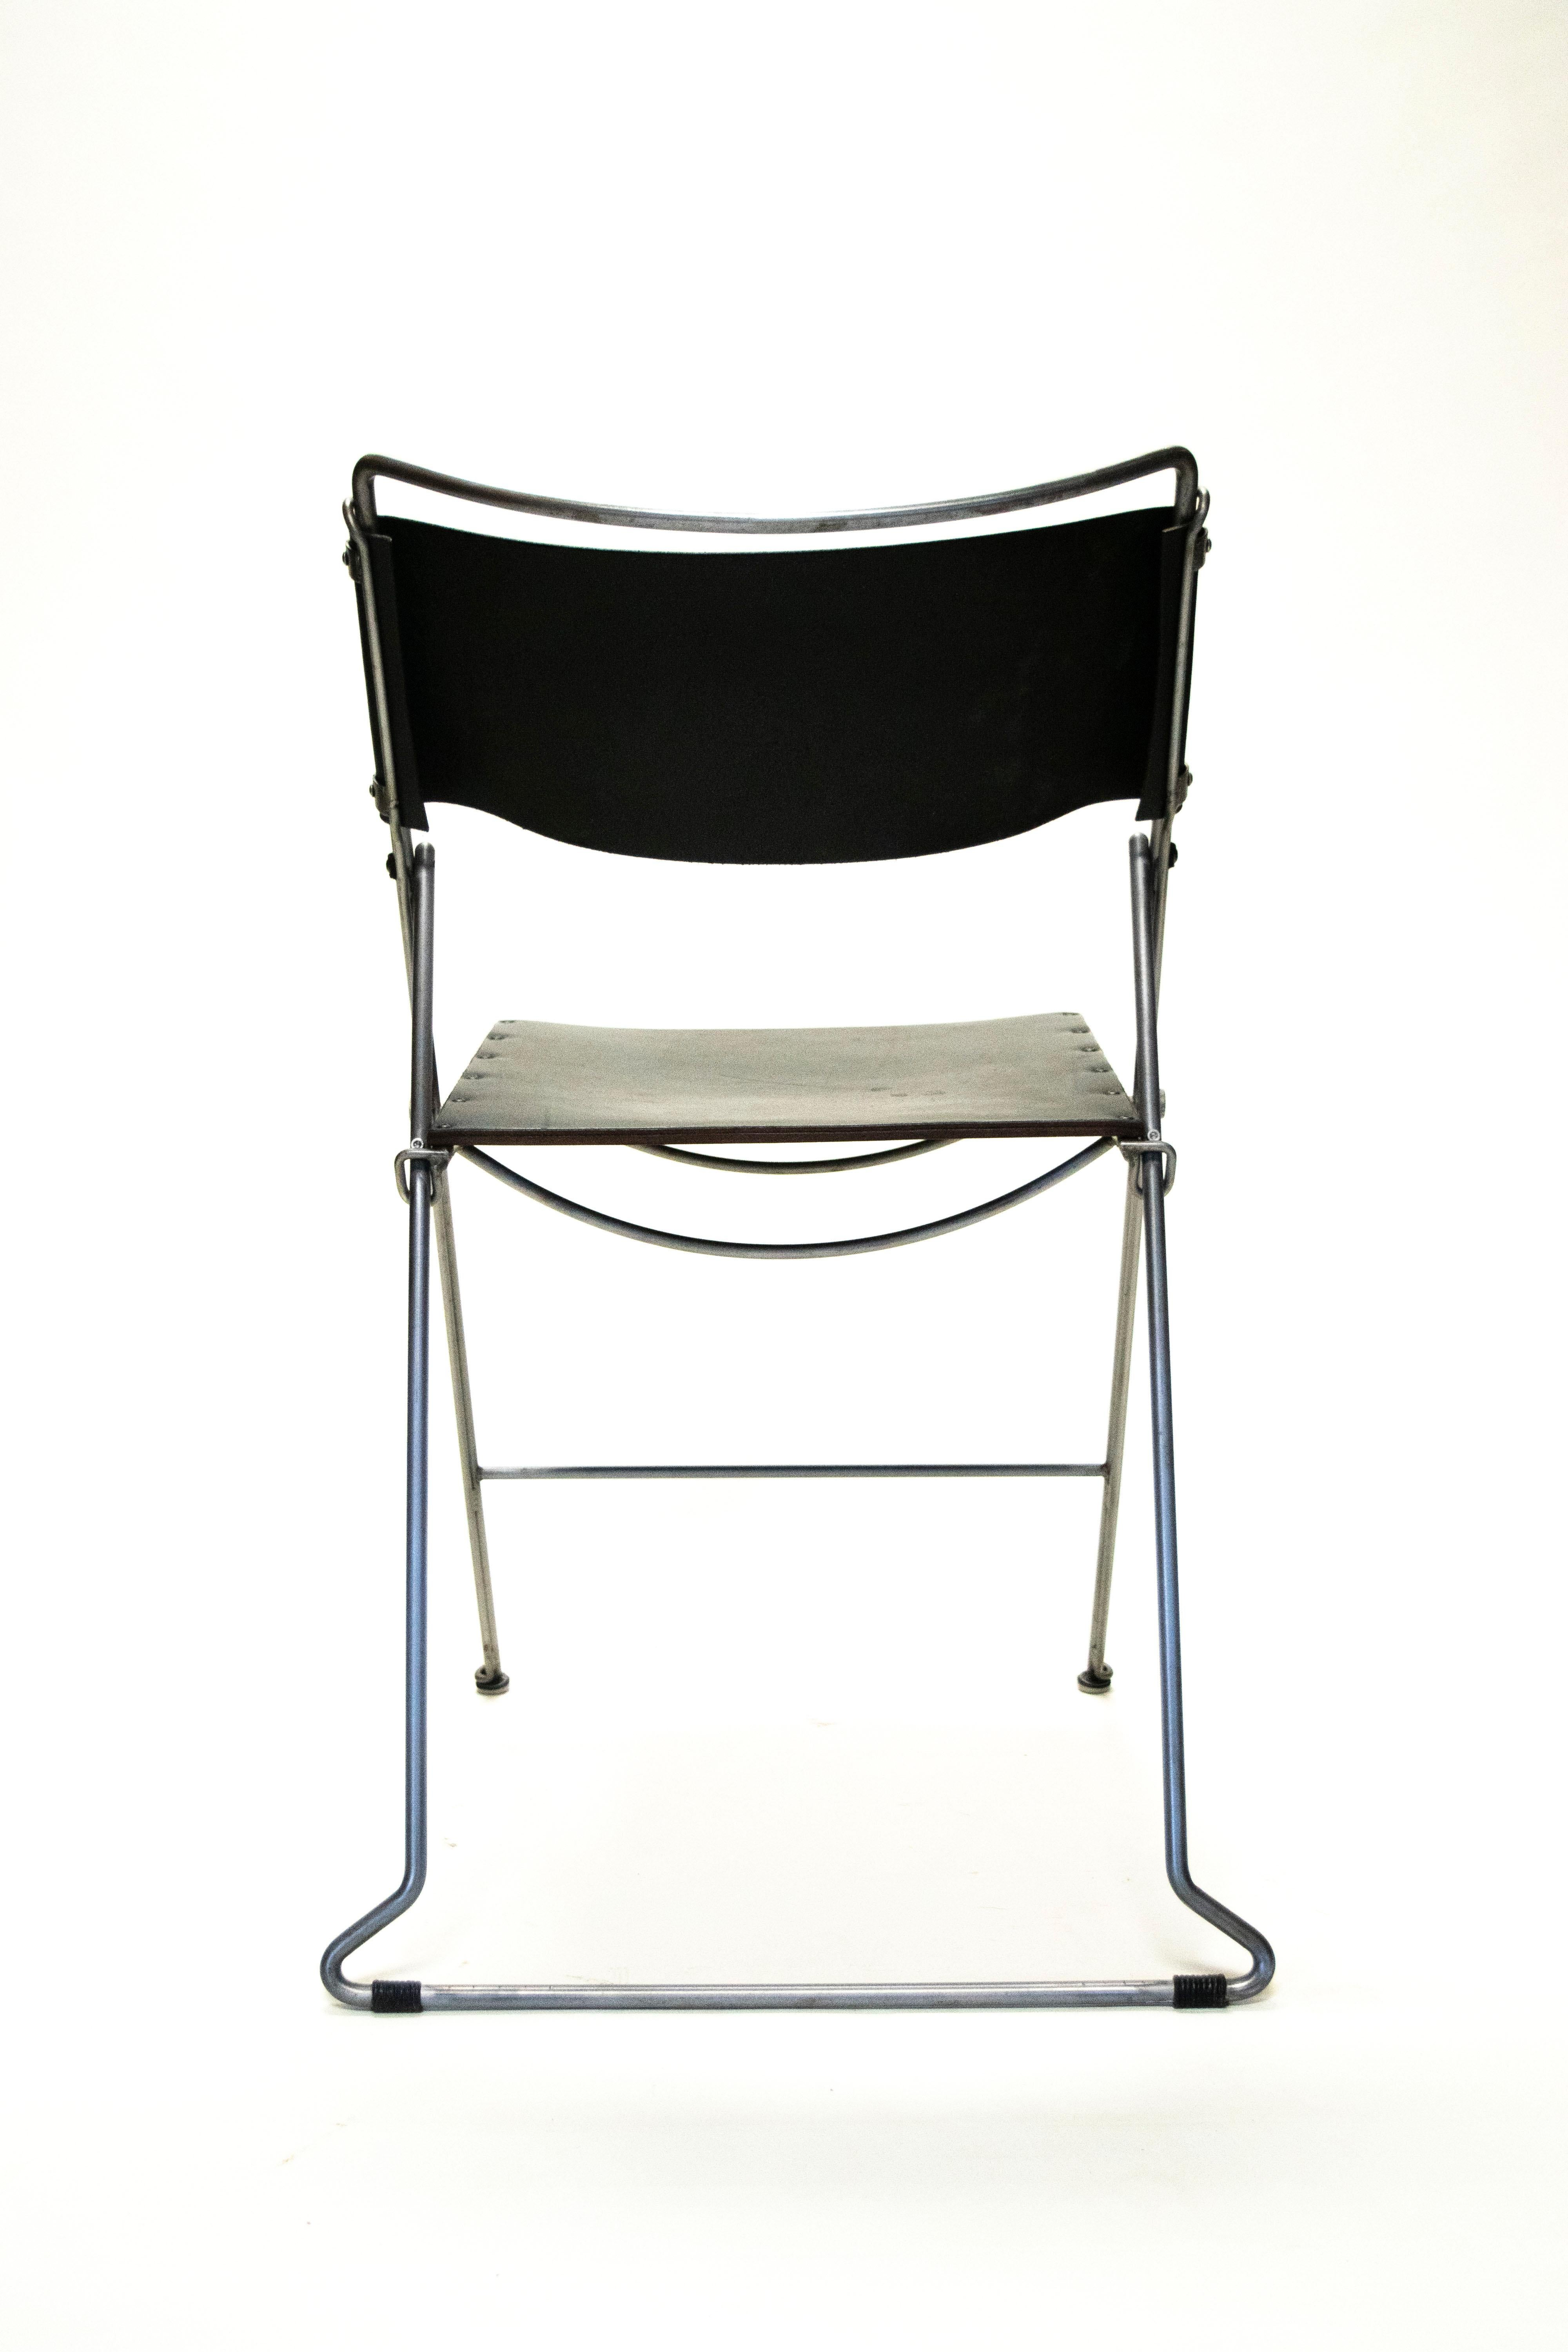 Incredible Campaign Folding Chair Cjindustries Chair Design For Home Cjindustriesco